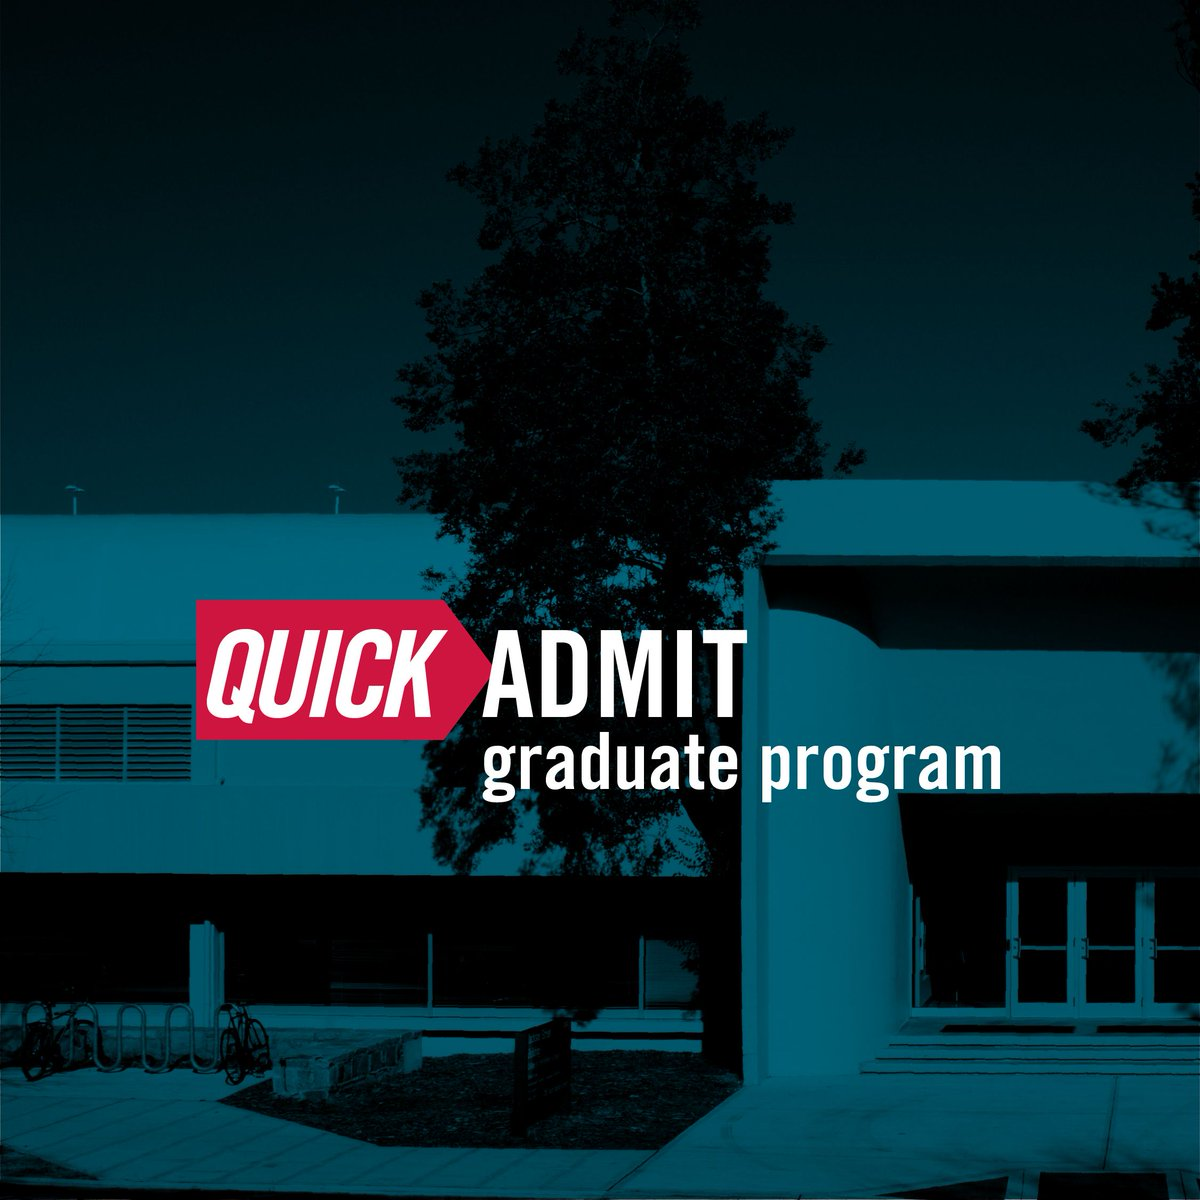 College grads are entering one of the most uncertain job markets in recent memory. Now, obtaining a graduate degree is easier than ever. See the full details about our Quick Admit program on our website. #covid19 #ugagrad #uga20 #classof2020 https://t.co/0SSBKrR3Qn https://t.co/cKyACZT6RK